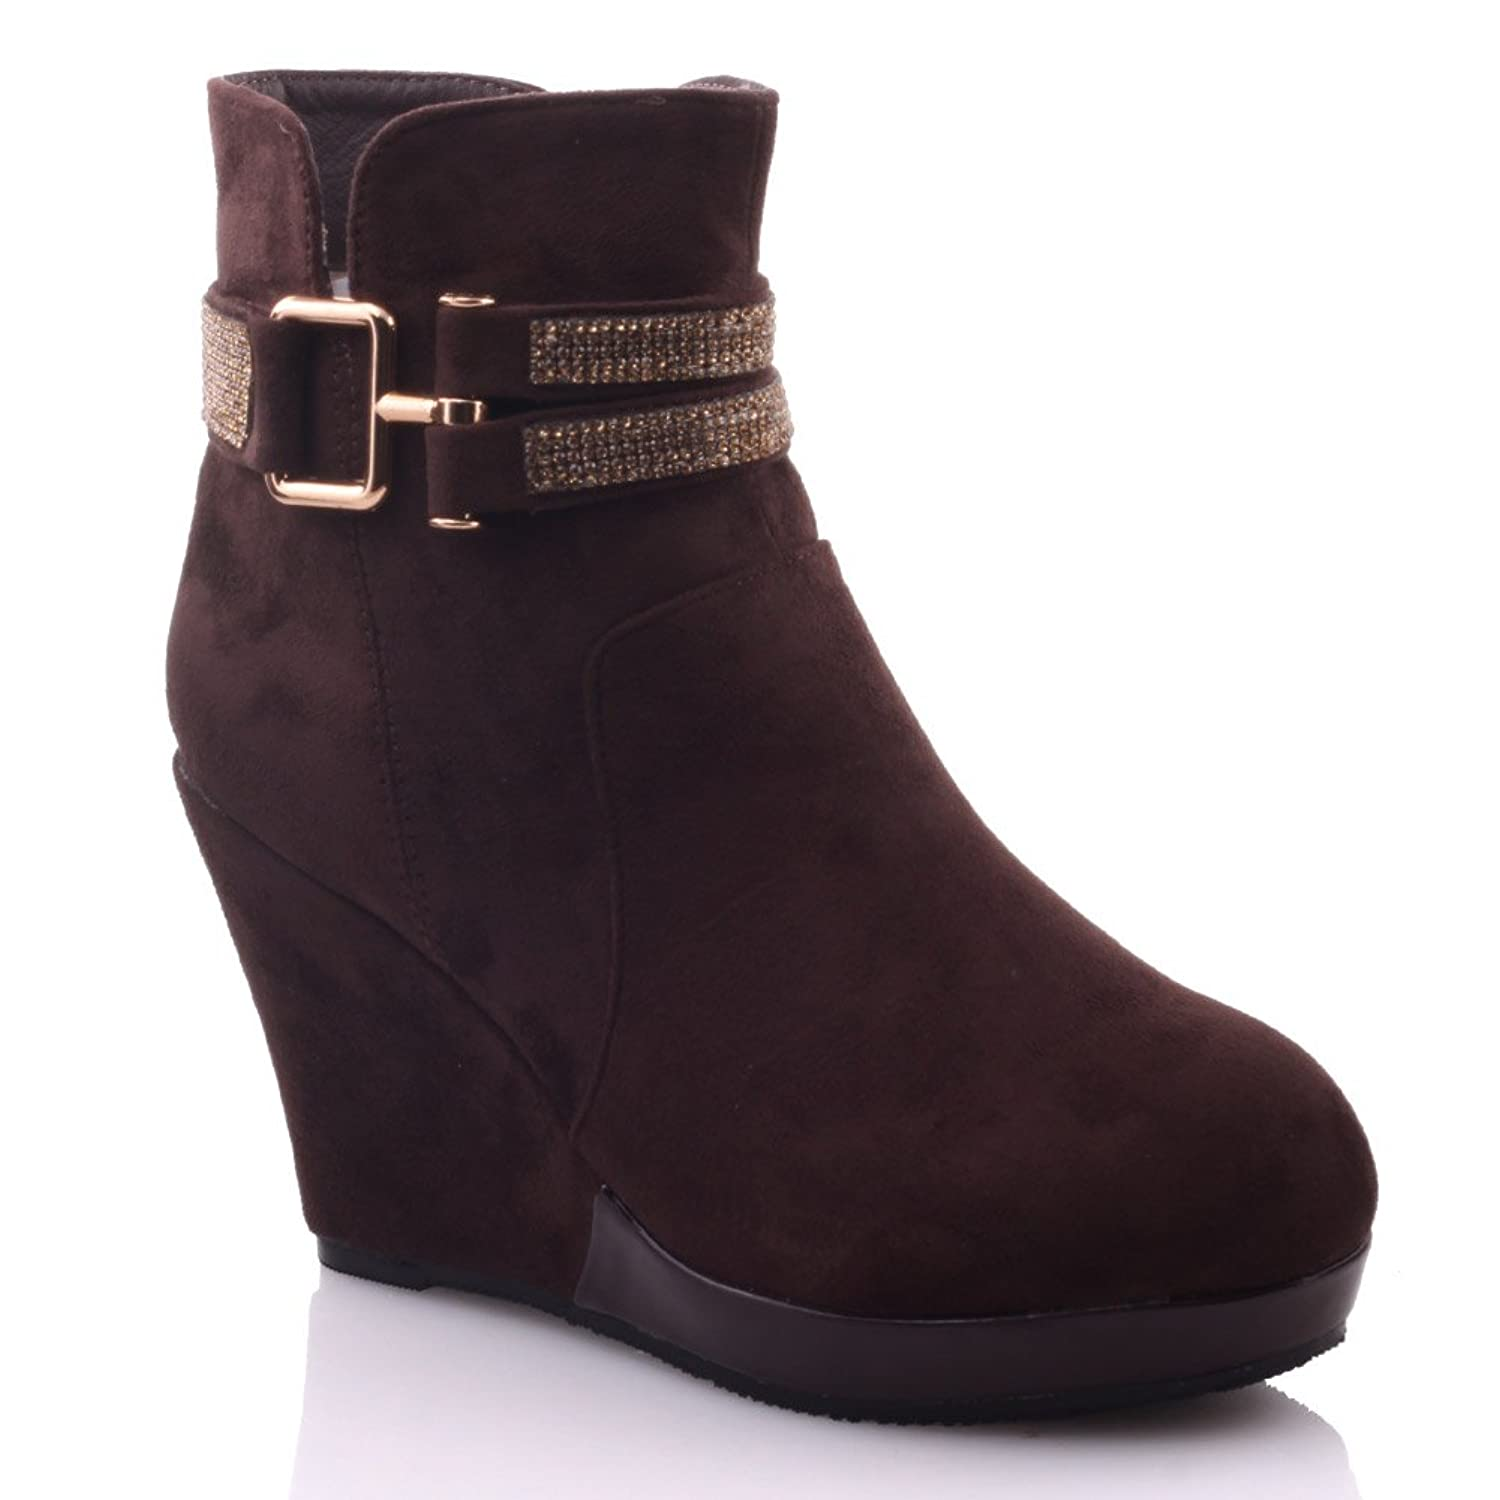 Unze Womens 'Raye' Adorable Ankle Winter Wedge Booties - A0519-7